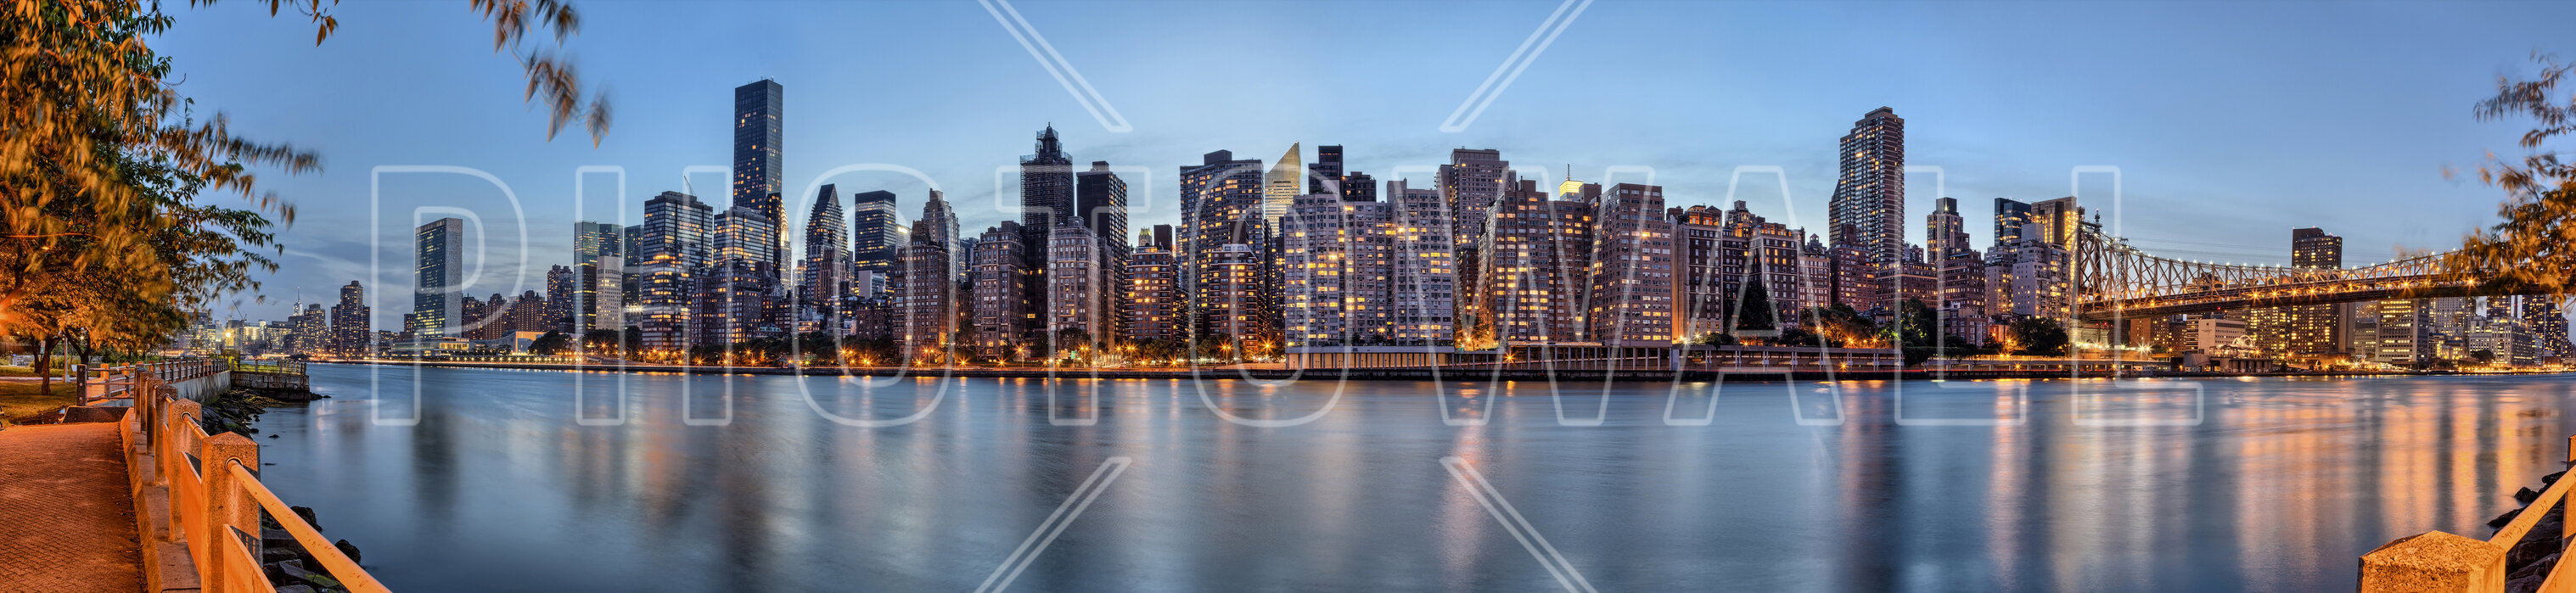 new york panorama at dusk fototapete nach ma photowall. Black Bedroom Furniture Sets. Home Design Ideas